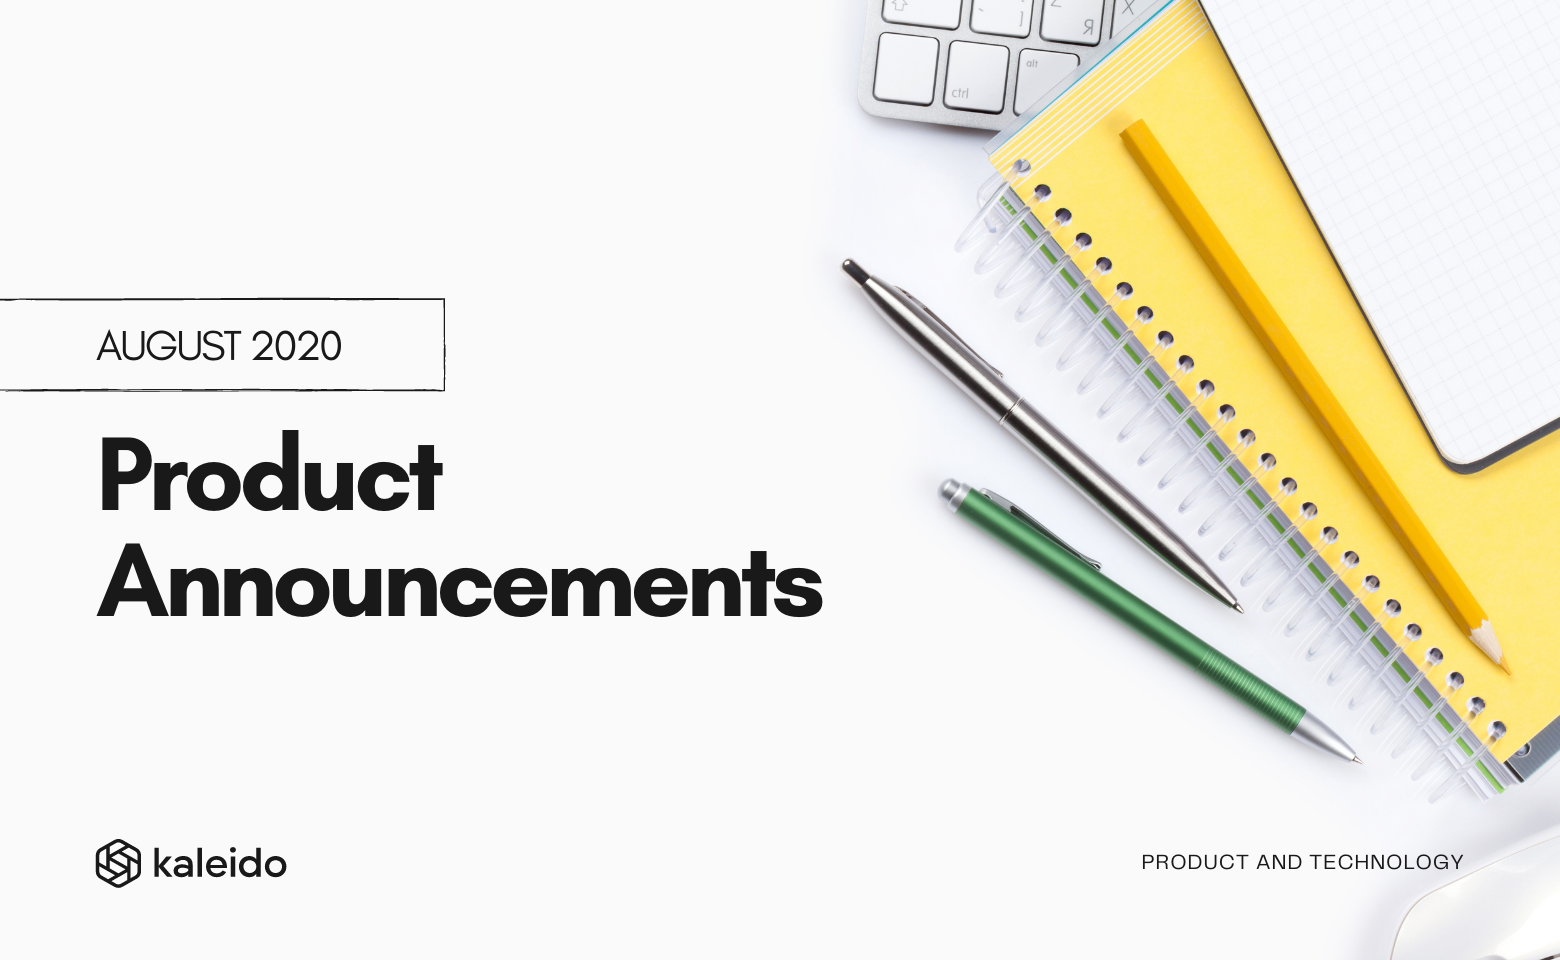 Product Announcements August 2020